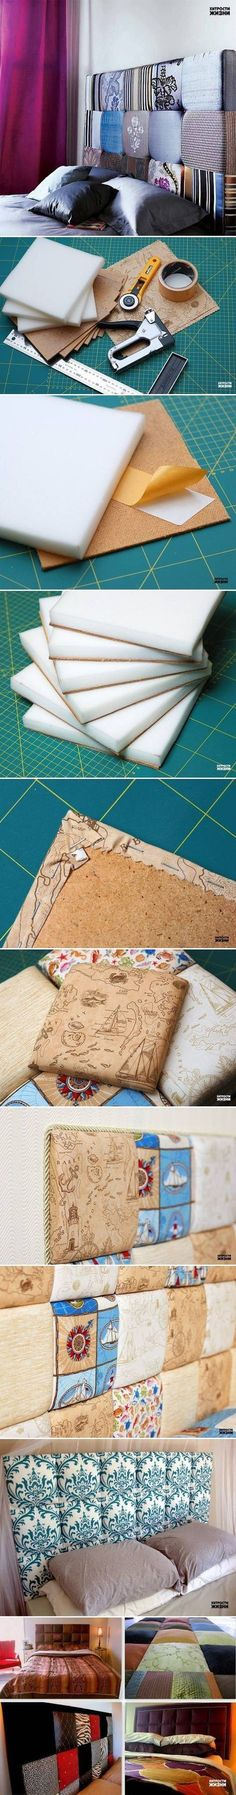 DIY Soft Headboard - Looks like it's made with foam pieces, cork tiles, tape, staples, and fabric. #diy #headboard #bedroom